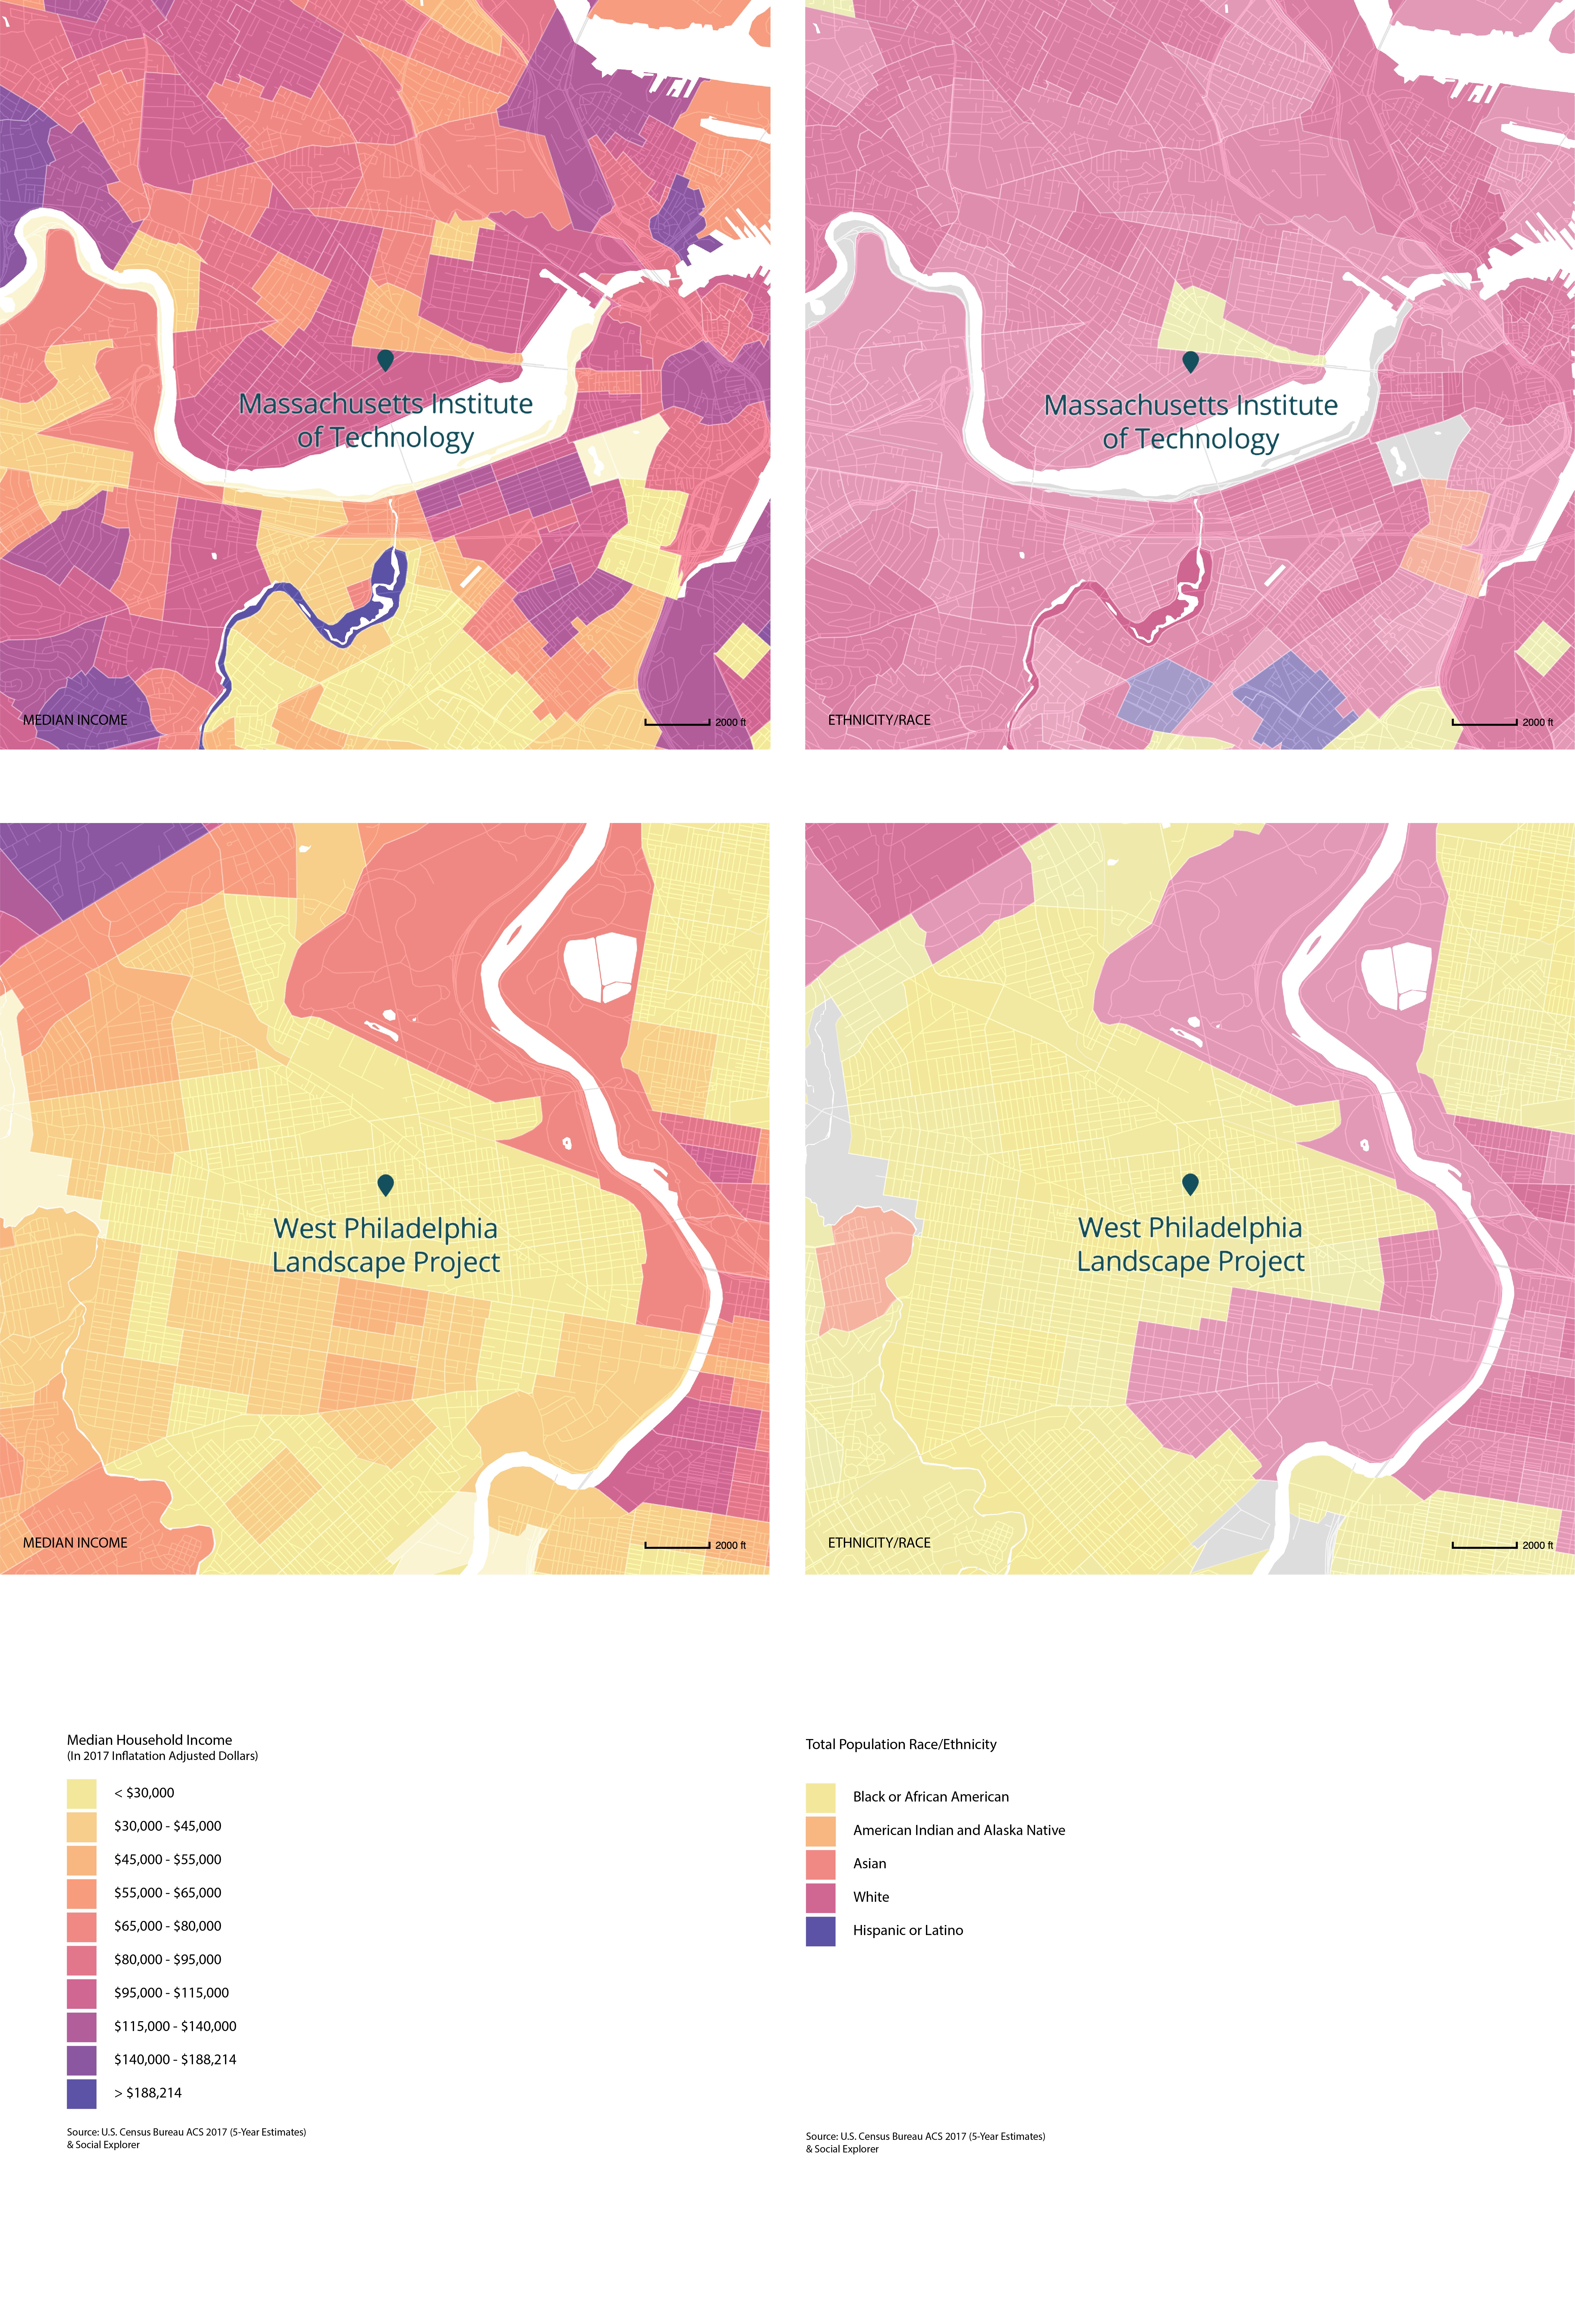 Income and Racial Demographics of Areas Surrounding MIT and the West Philadelphia Landscape Project